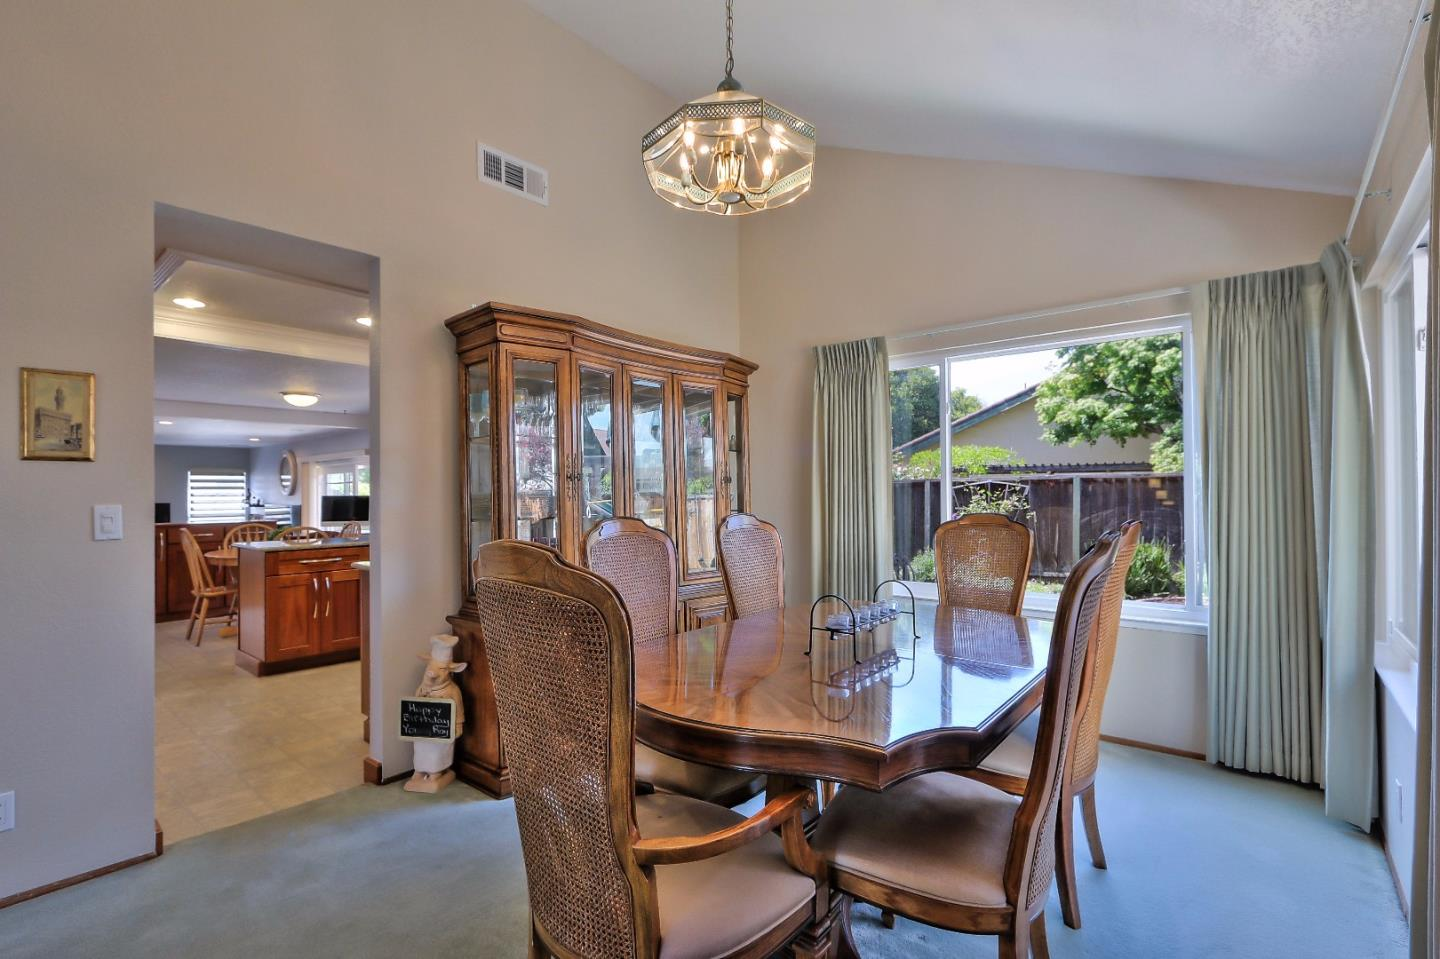 Additional photo for property listing at 3203 Mabury Rd  SAN JOSE, CALIFORNIA 95127